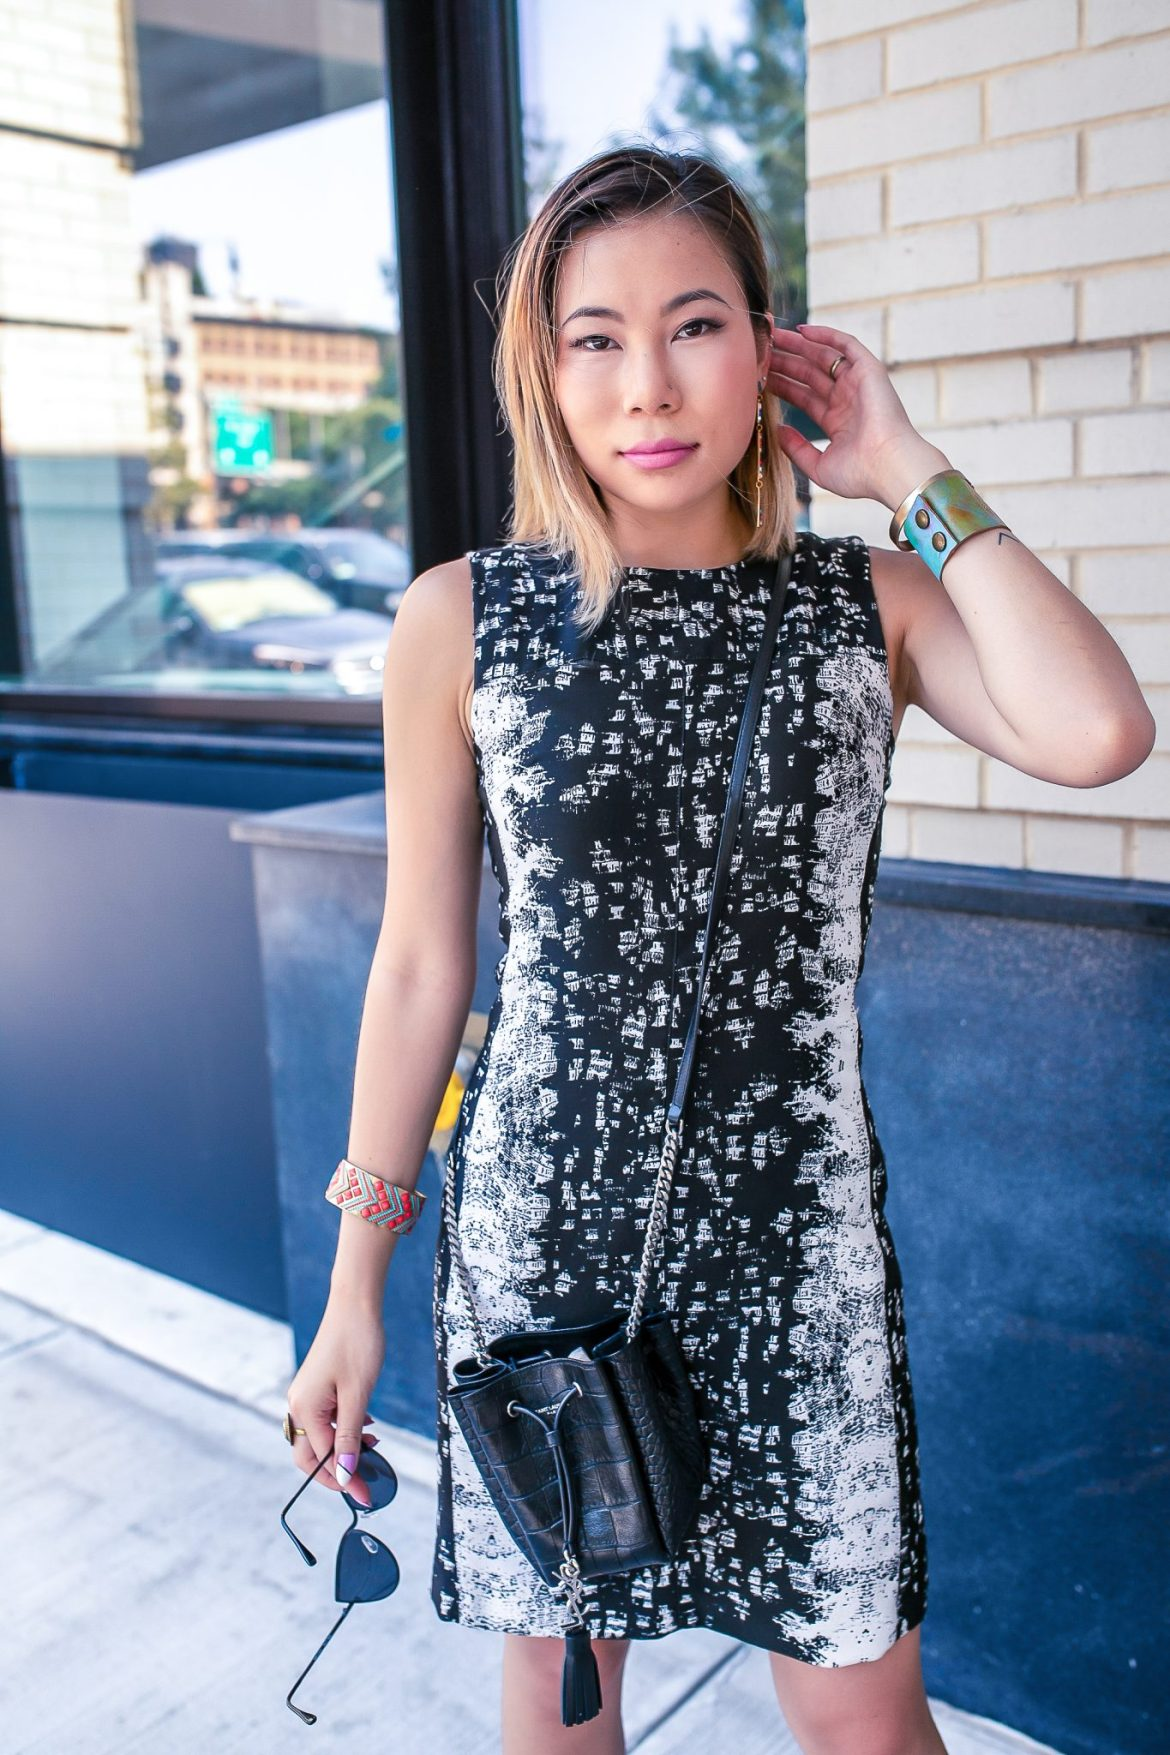 Dan liu classic shift dress getty images nyfw new york fashion week 2018 sequin jewelry ysl saint laurent vye eyewear sunglasses cateye loren hope bracelet croc embossed bucket bag etienne aigner sandal block heel suede